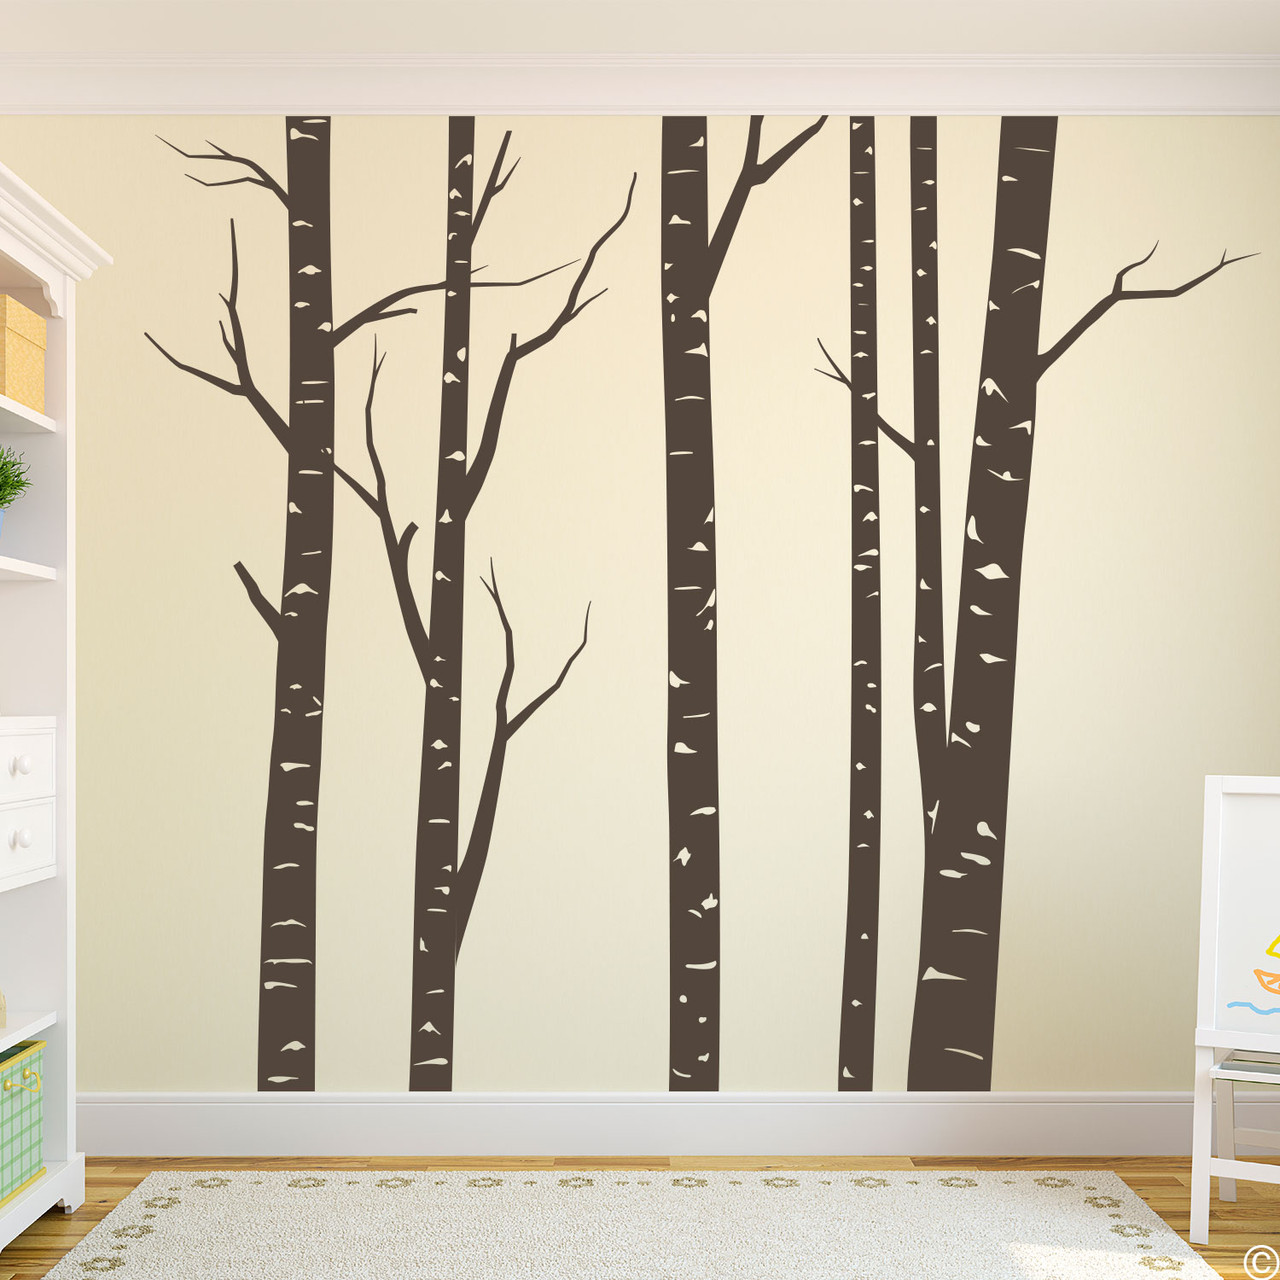 Aspen forest wall decal mural in brown vinyl color.